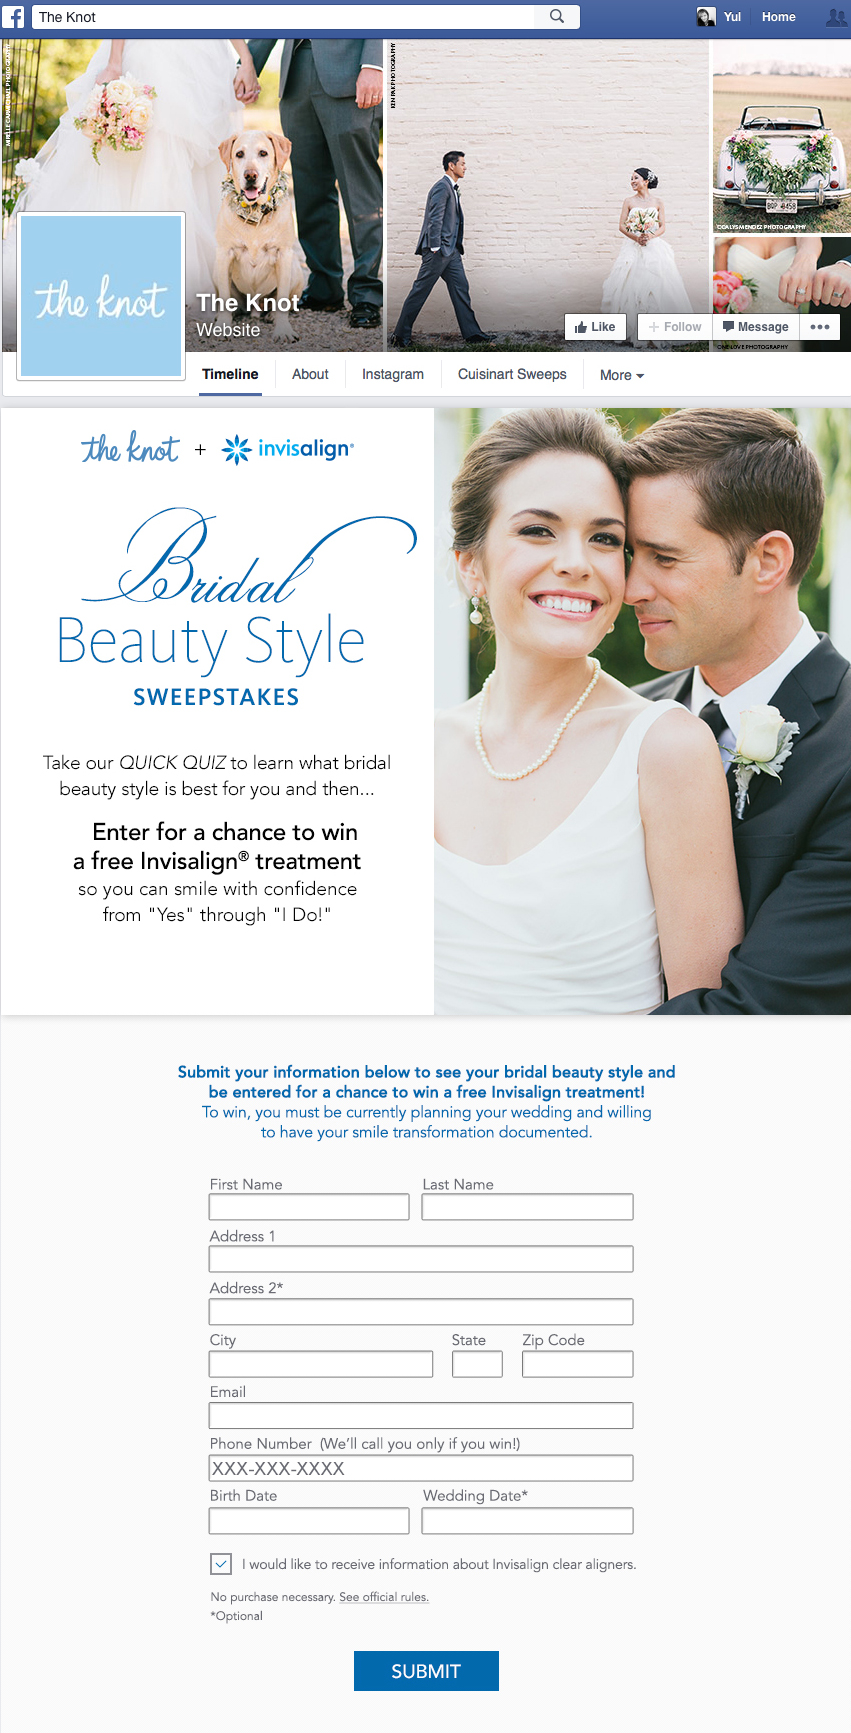 Invisalign Sweepstakes